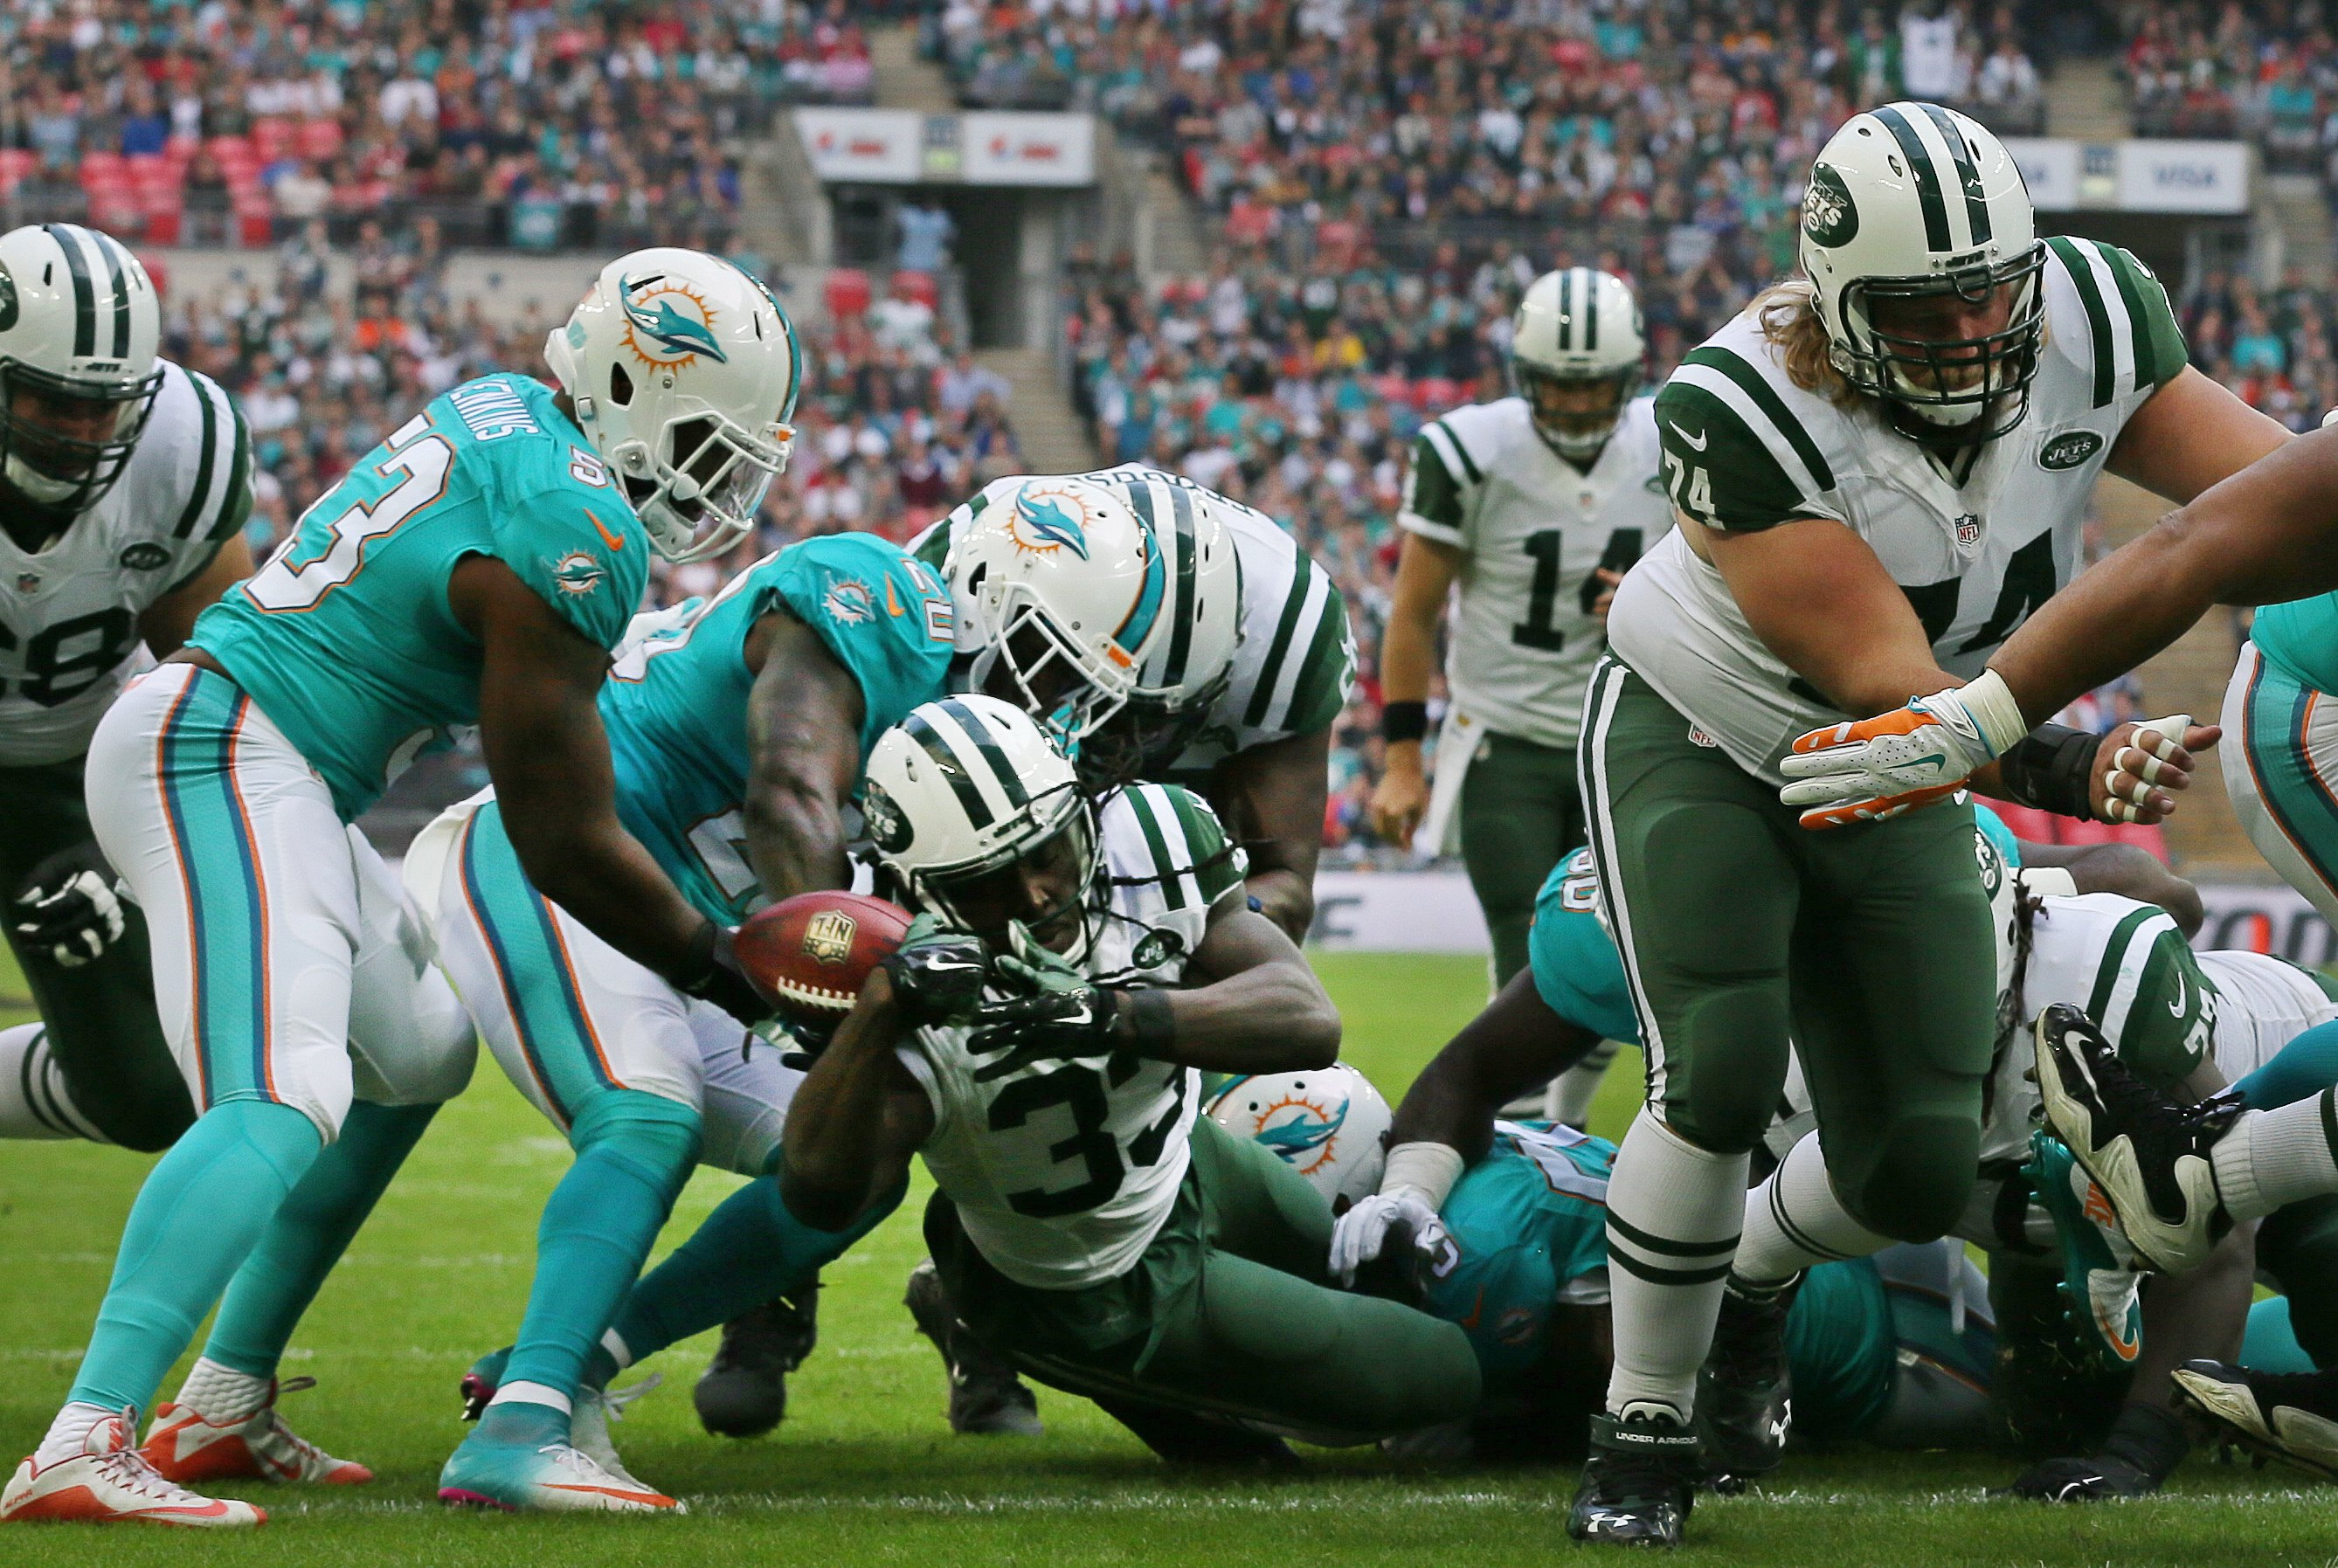 New York Jets' Chris Ivory, center, scores a touchdown during the NFL football game between the New York Jets and the Miami Dolphins and at Wembley stadium in London, Sunday, Oct. 4, 2015. (AP Photo/Tim Ireland)